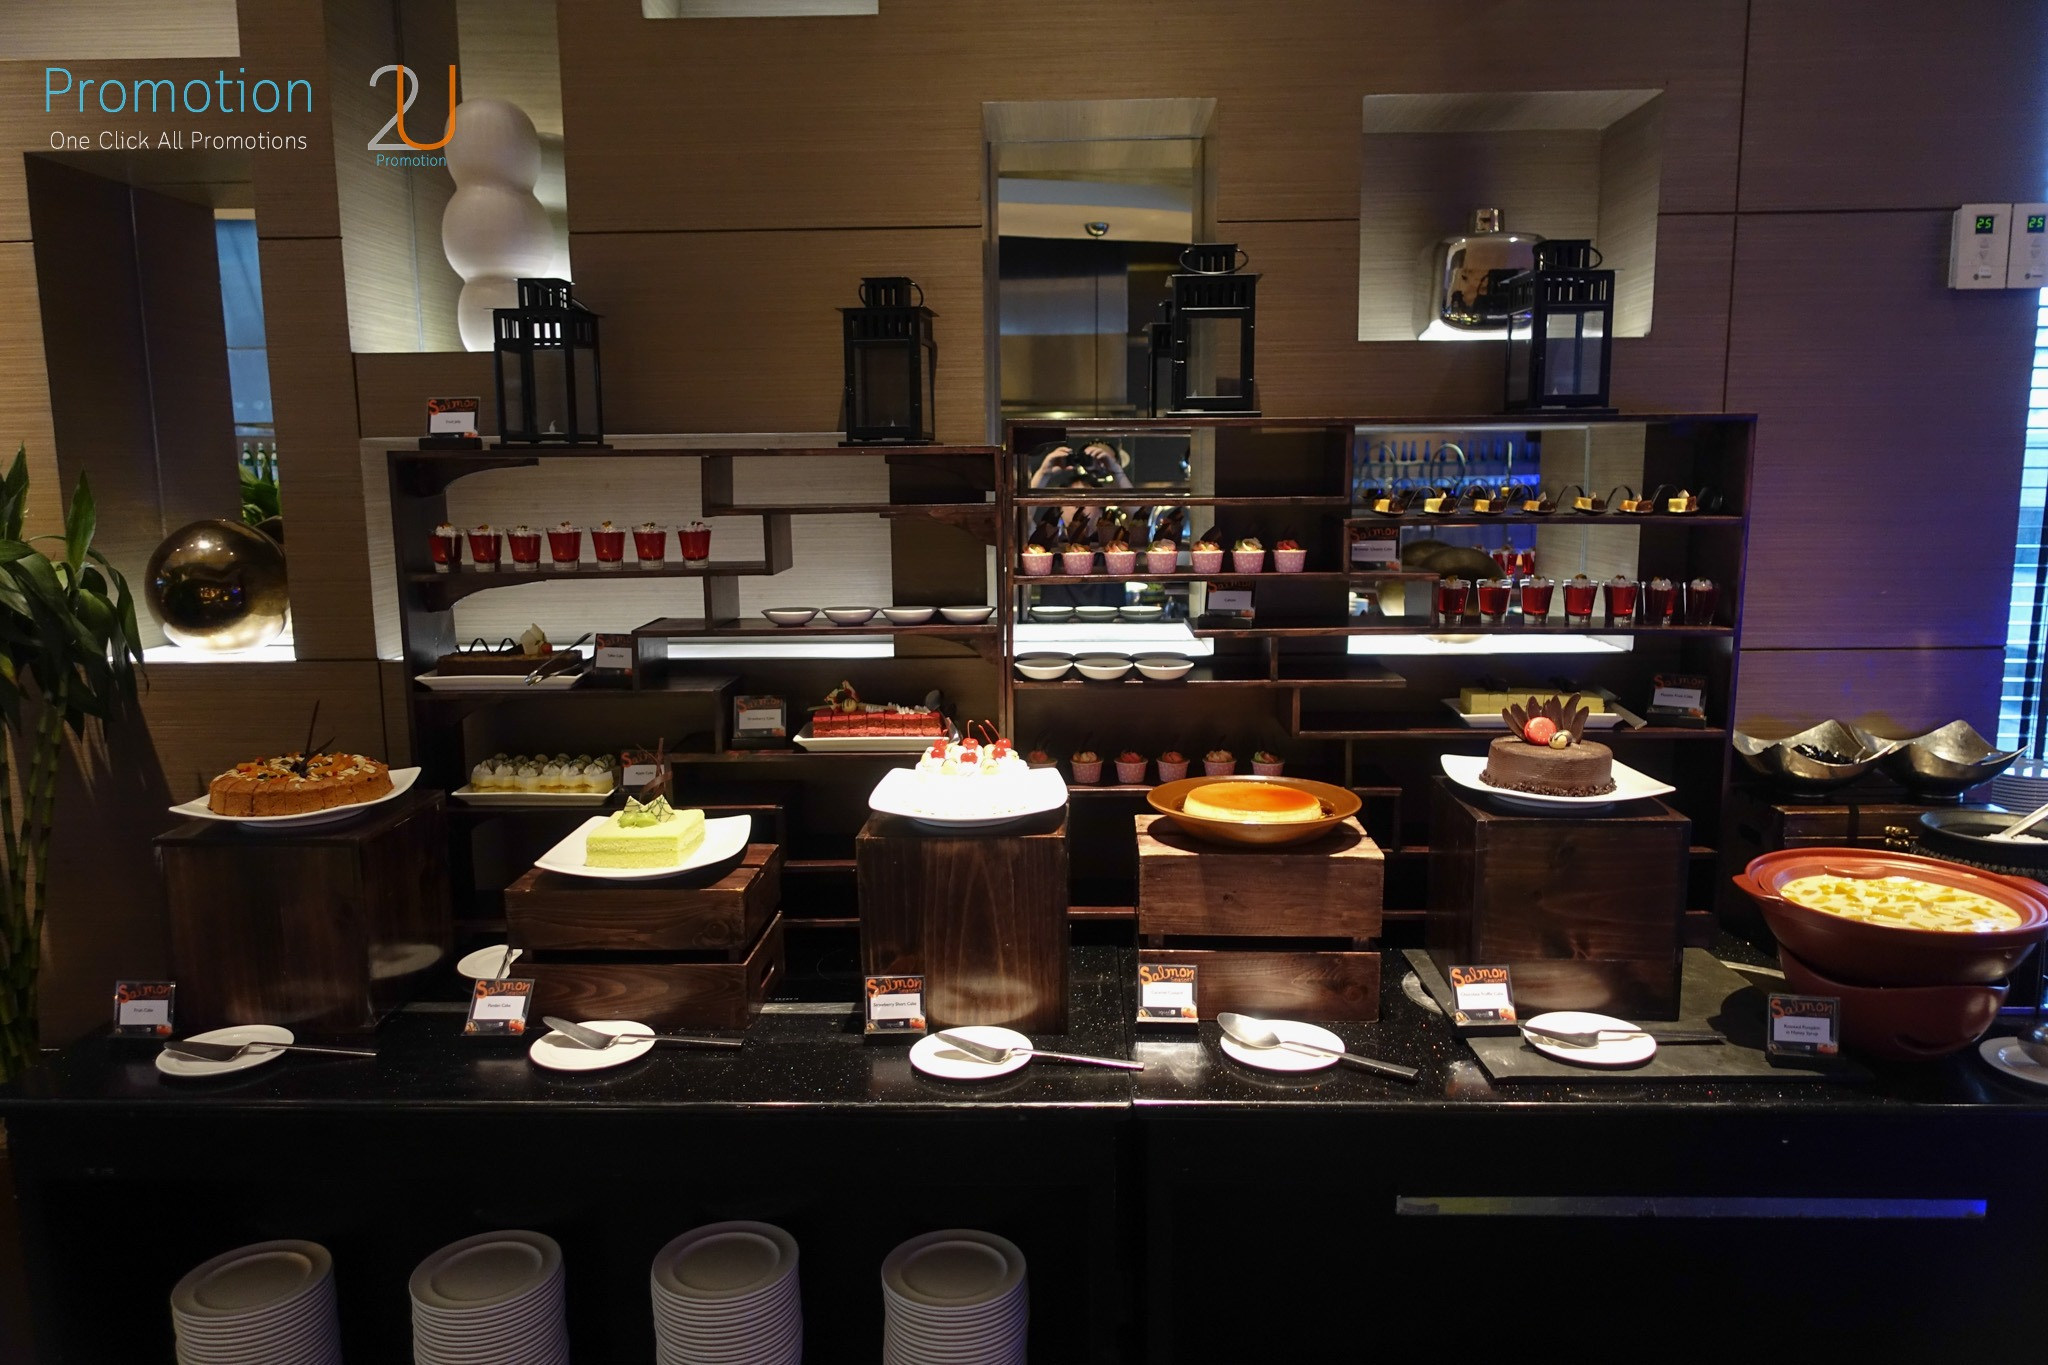 69Promotiion-Buffet-Come-2-pay-1-at-The--Squaer-Novotel-Pleonjit-Bangkok